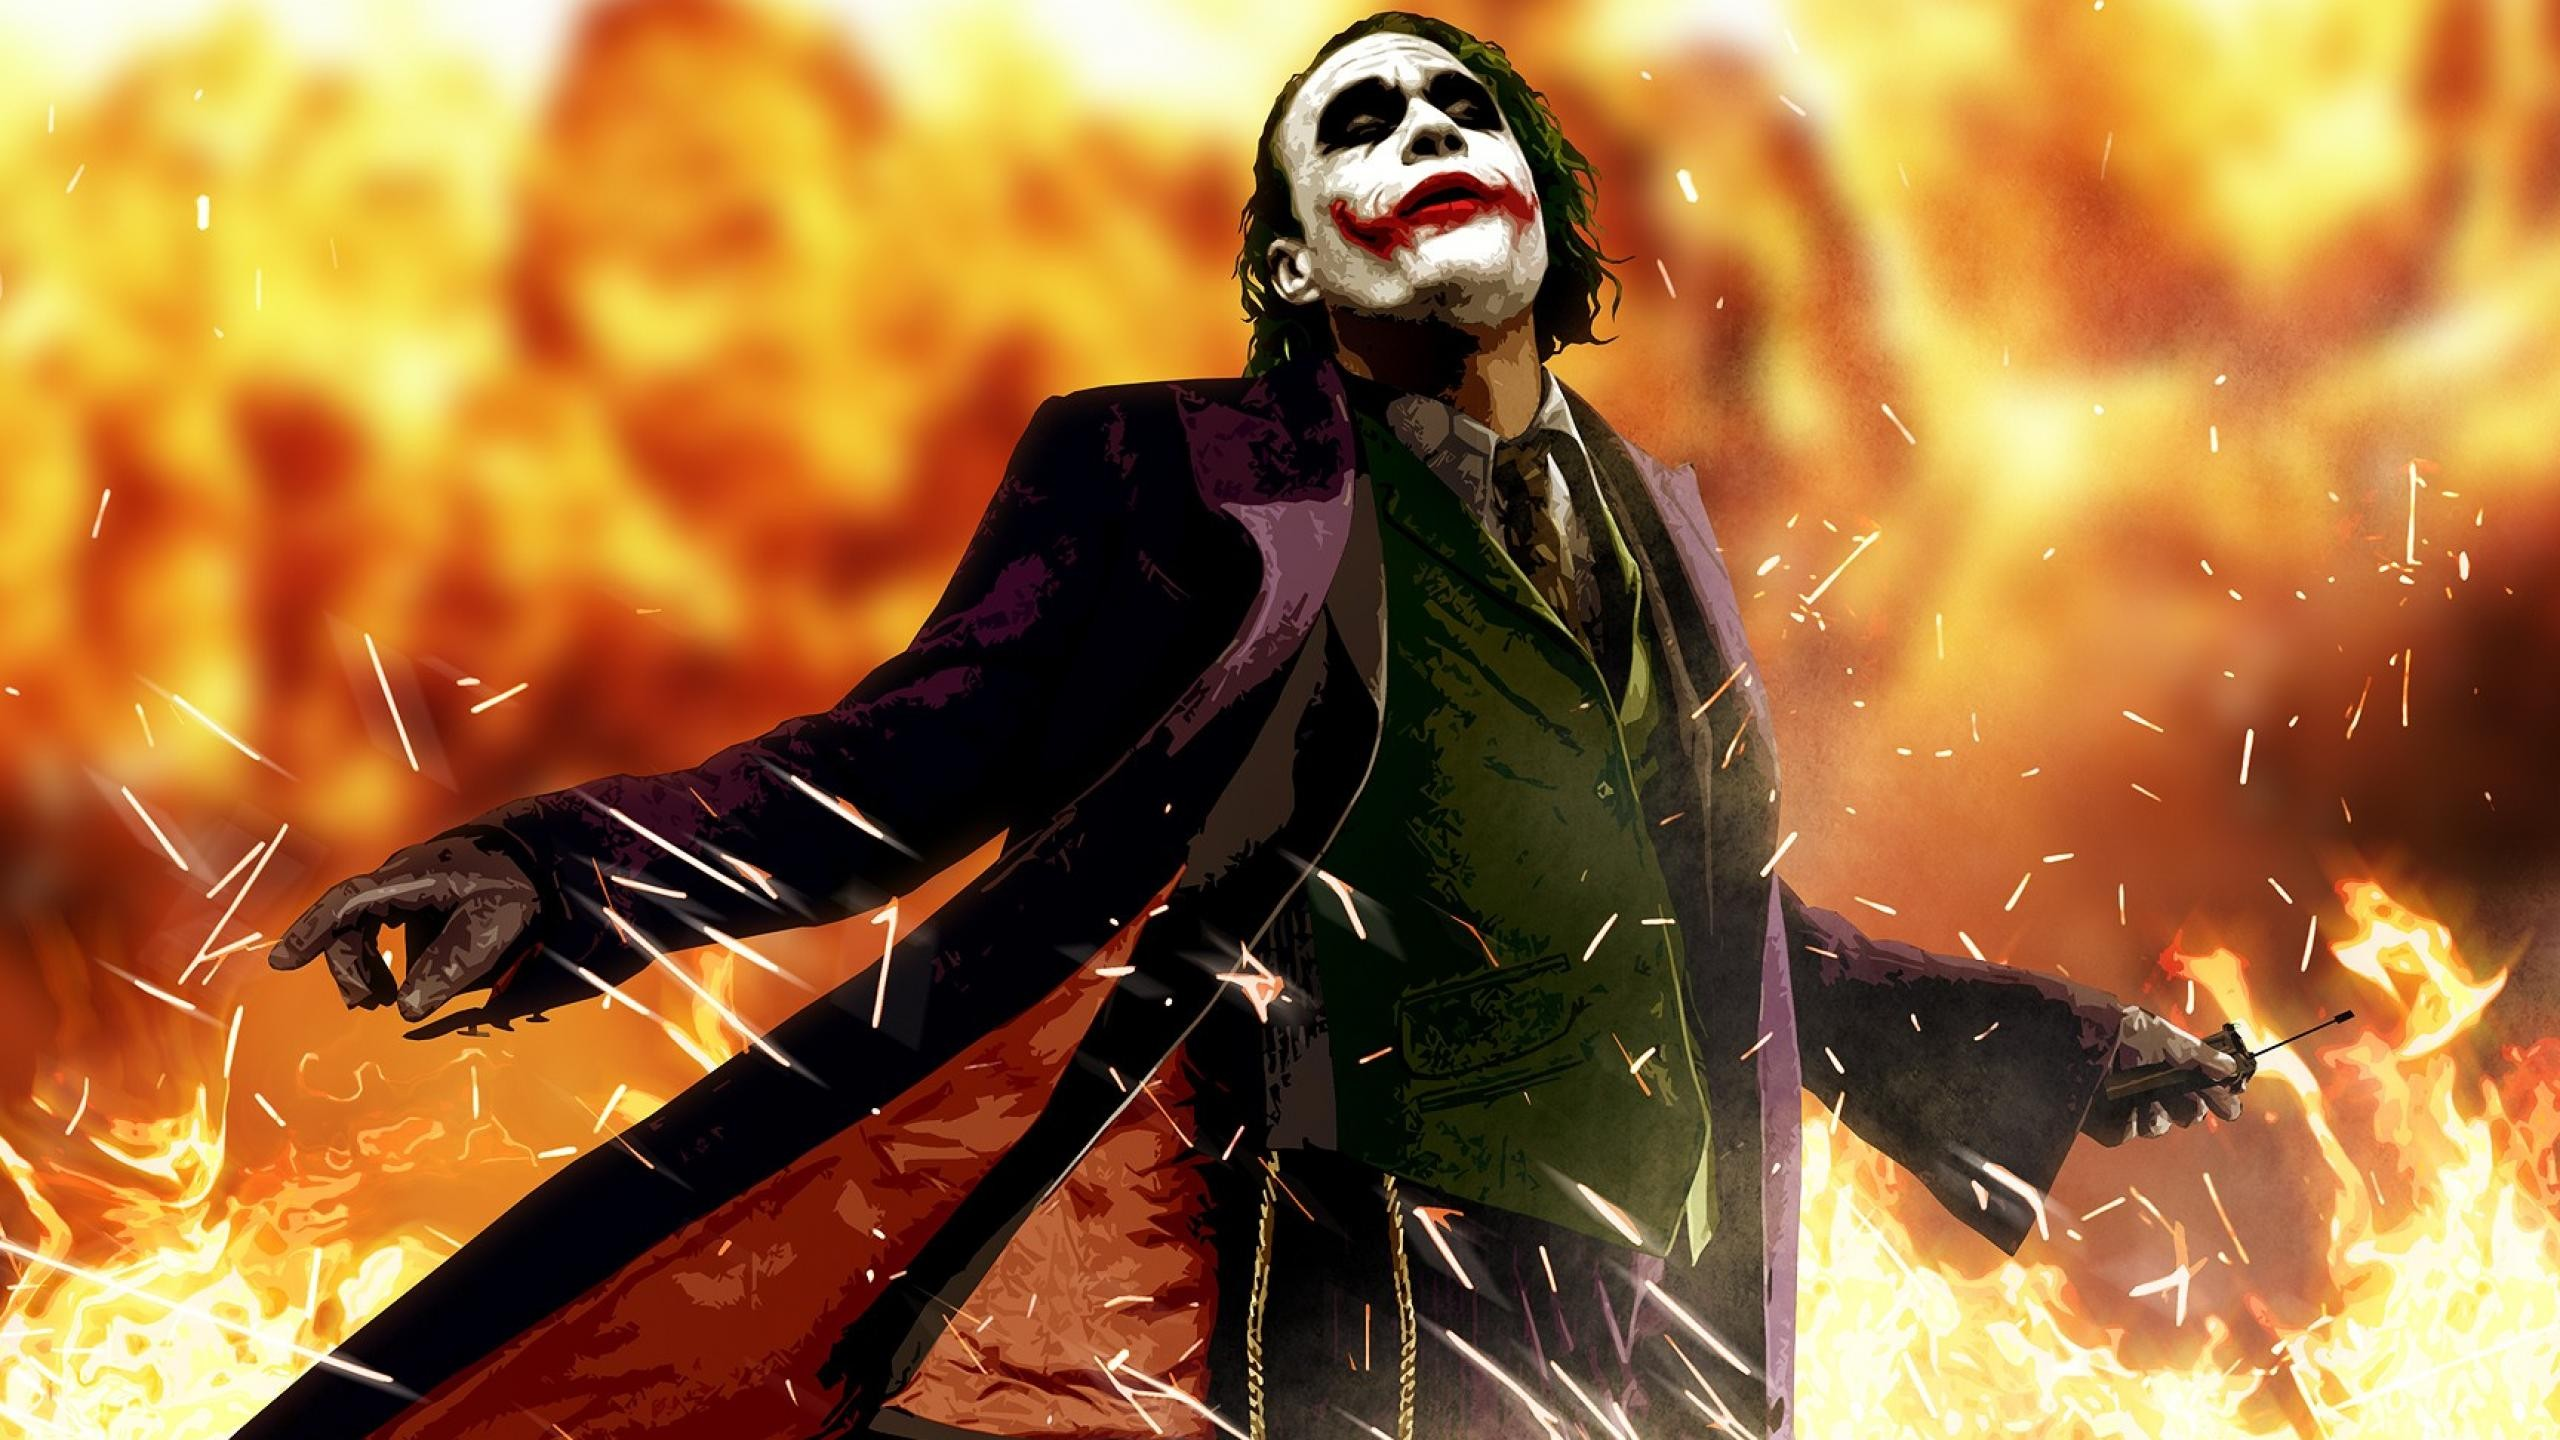 the_joker_wallpaper